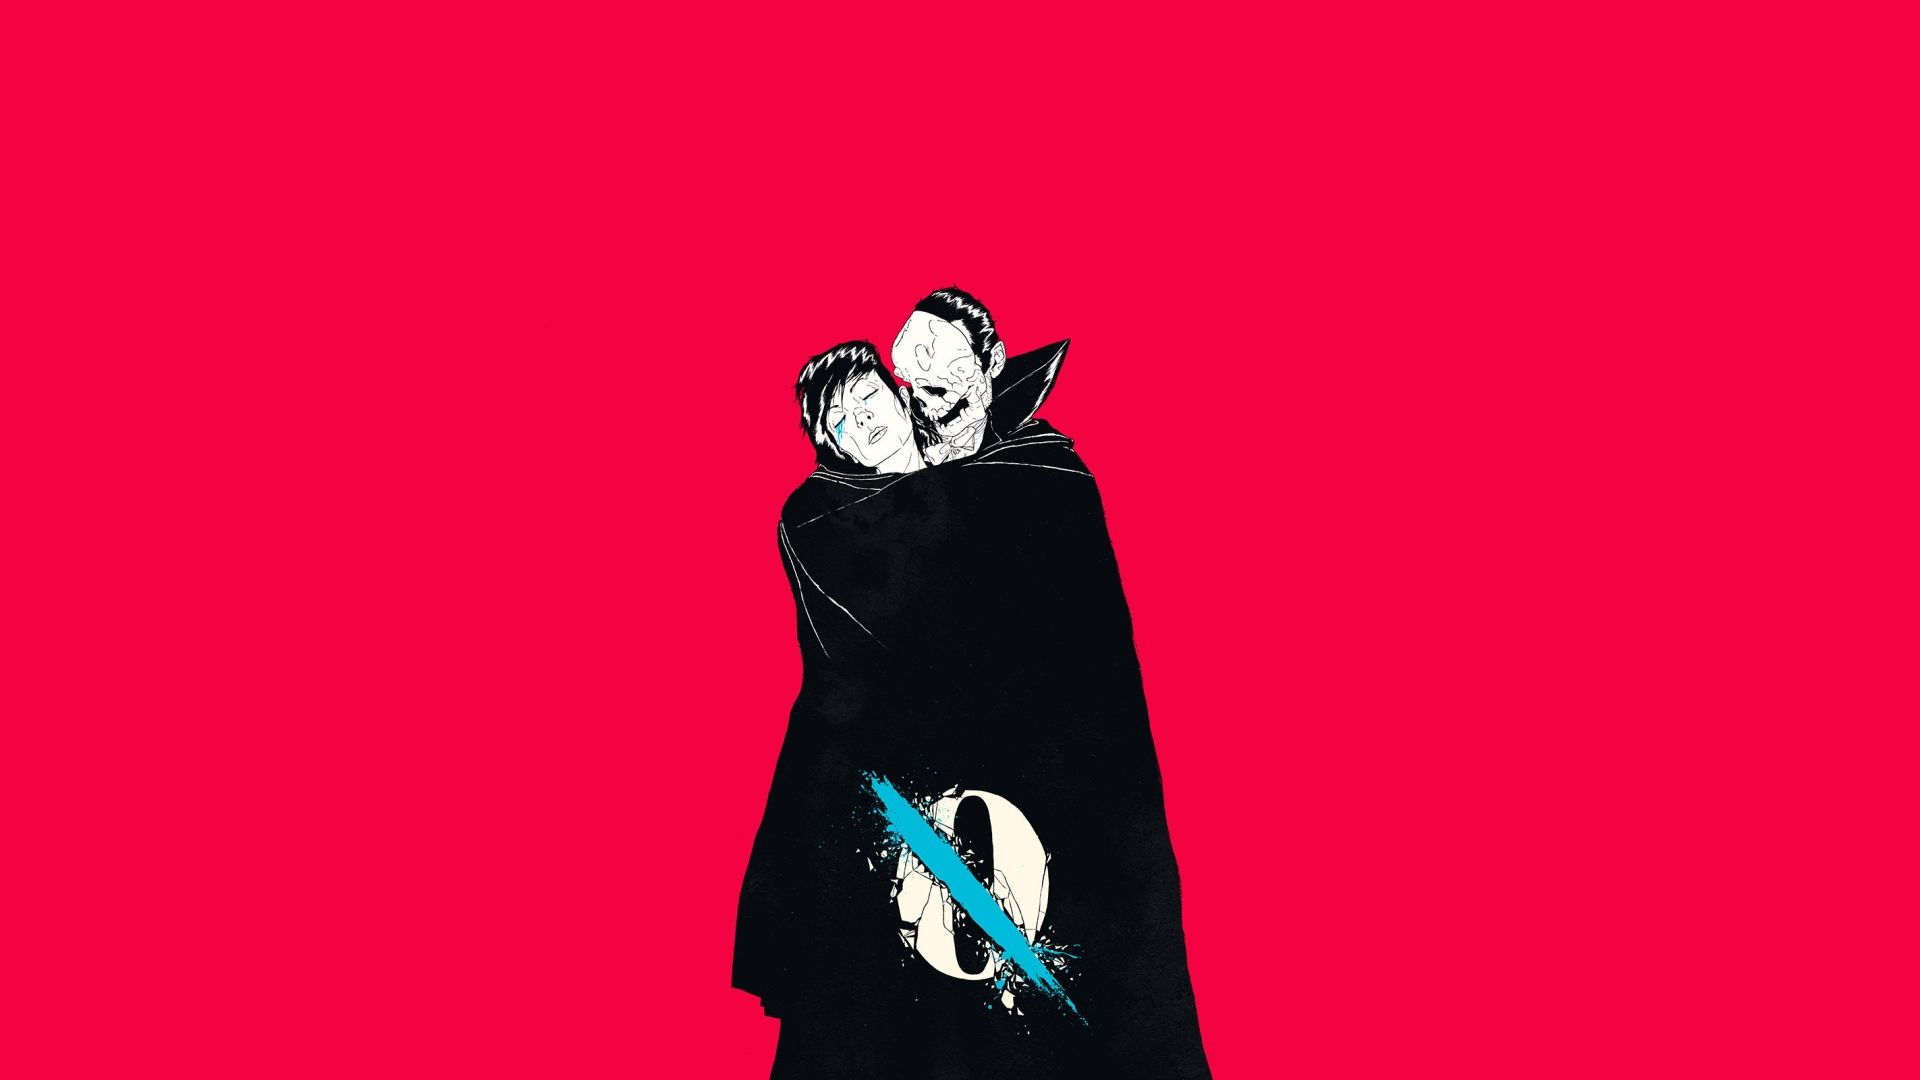 1920x1080 A Few Like Clockwork Wallpapers R Wallpapers Queens Of The Stone Age Contemporary Illustration Album Covers